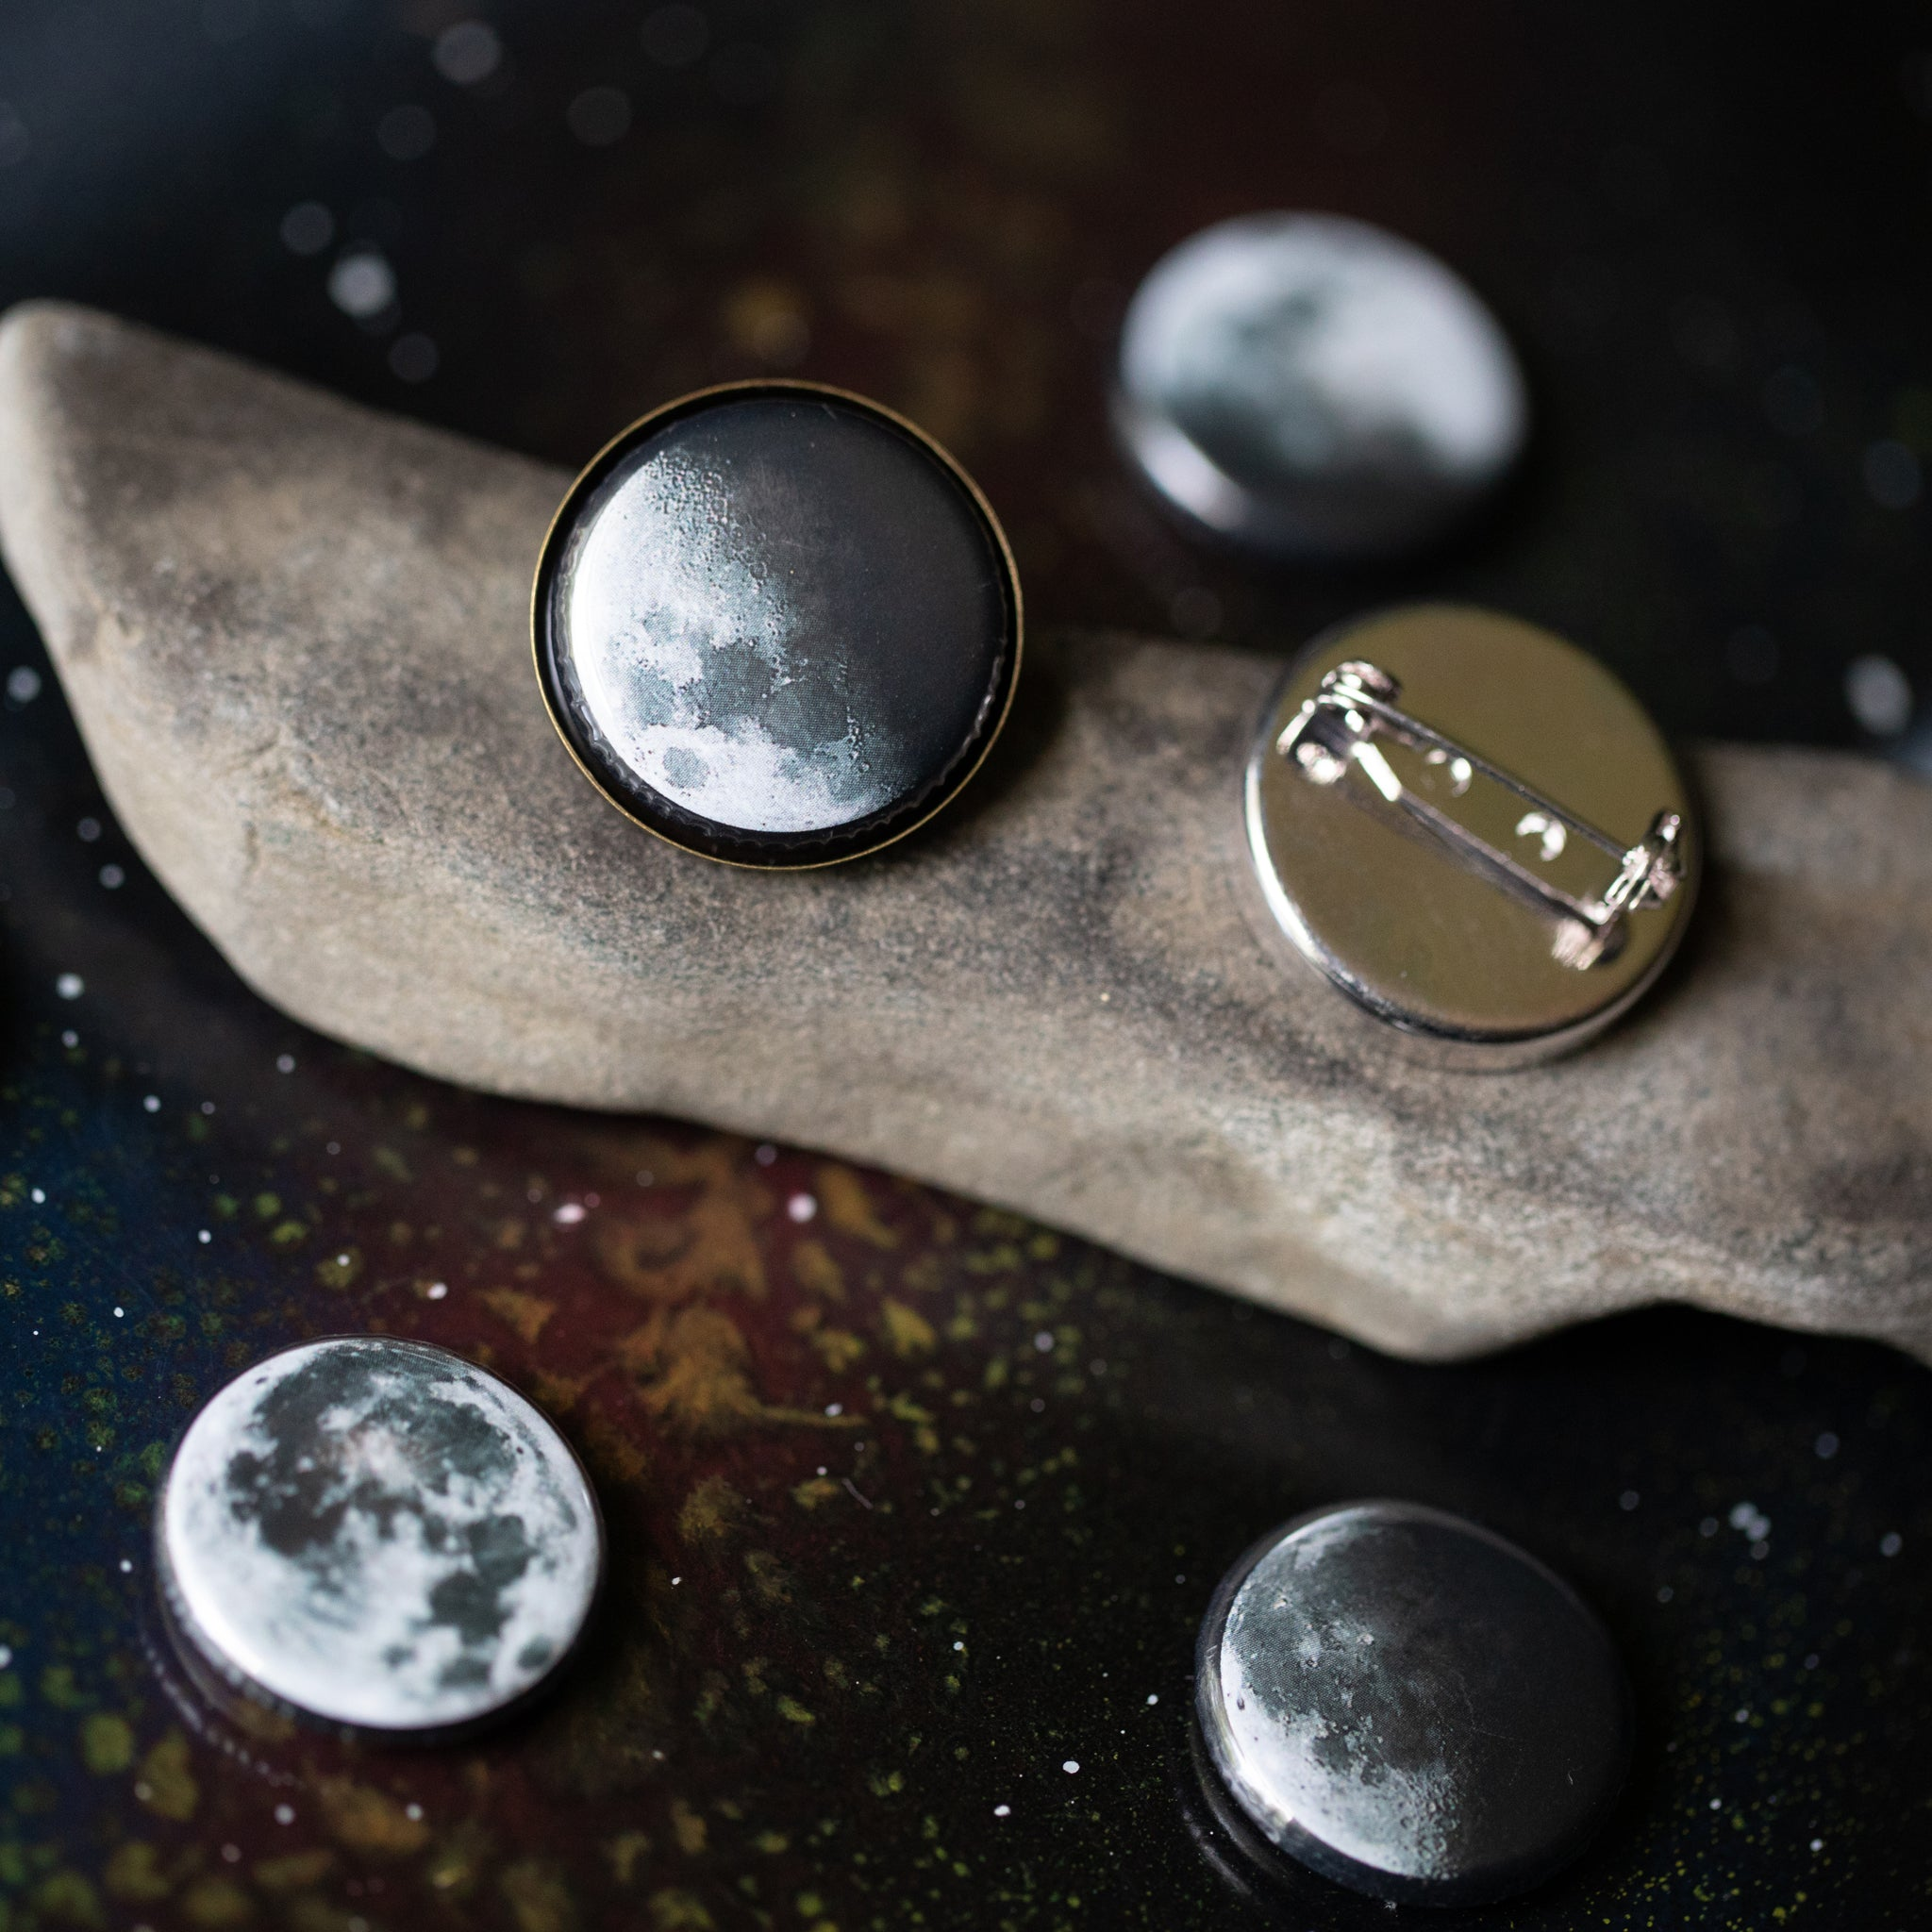 Interchangeable lapel pin brooch with 5 moon phases - Cosmic lunar moon magnetic galaxy jewellery for STEM fashion by Yugen Tribe - gift for men, women, unisex, gender non-comforning, GNB, GNC, non-binary